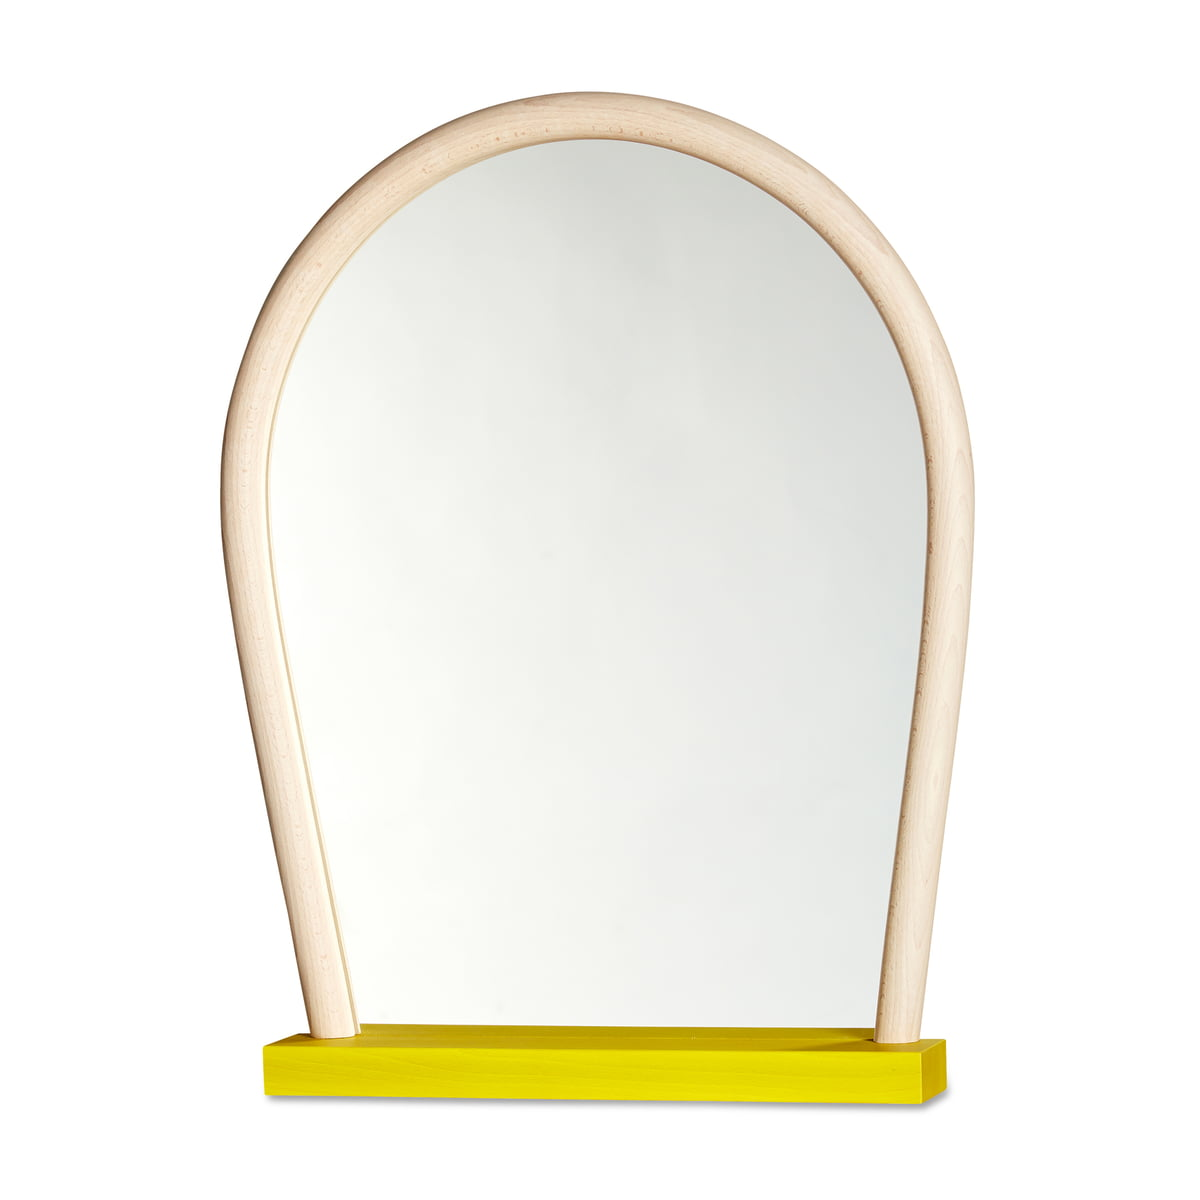 Bent Wood Mirror